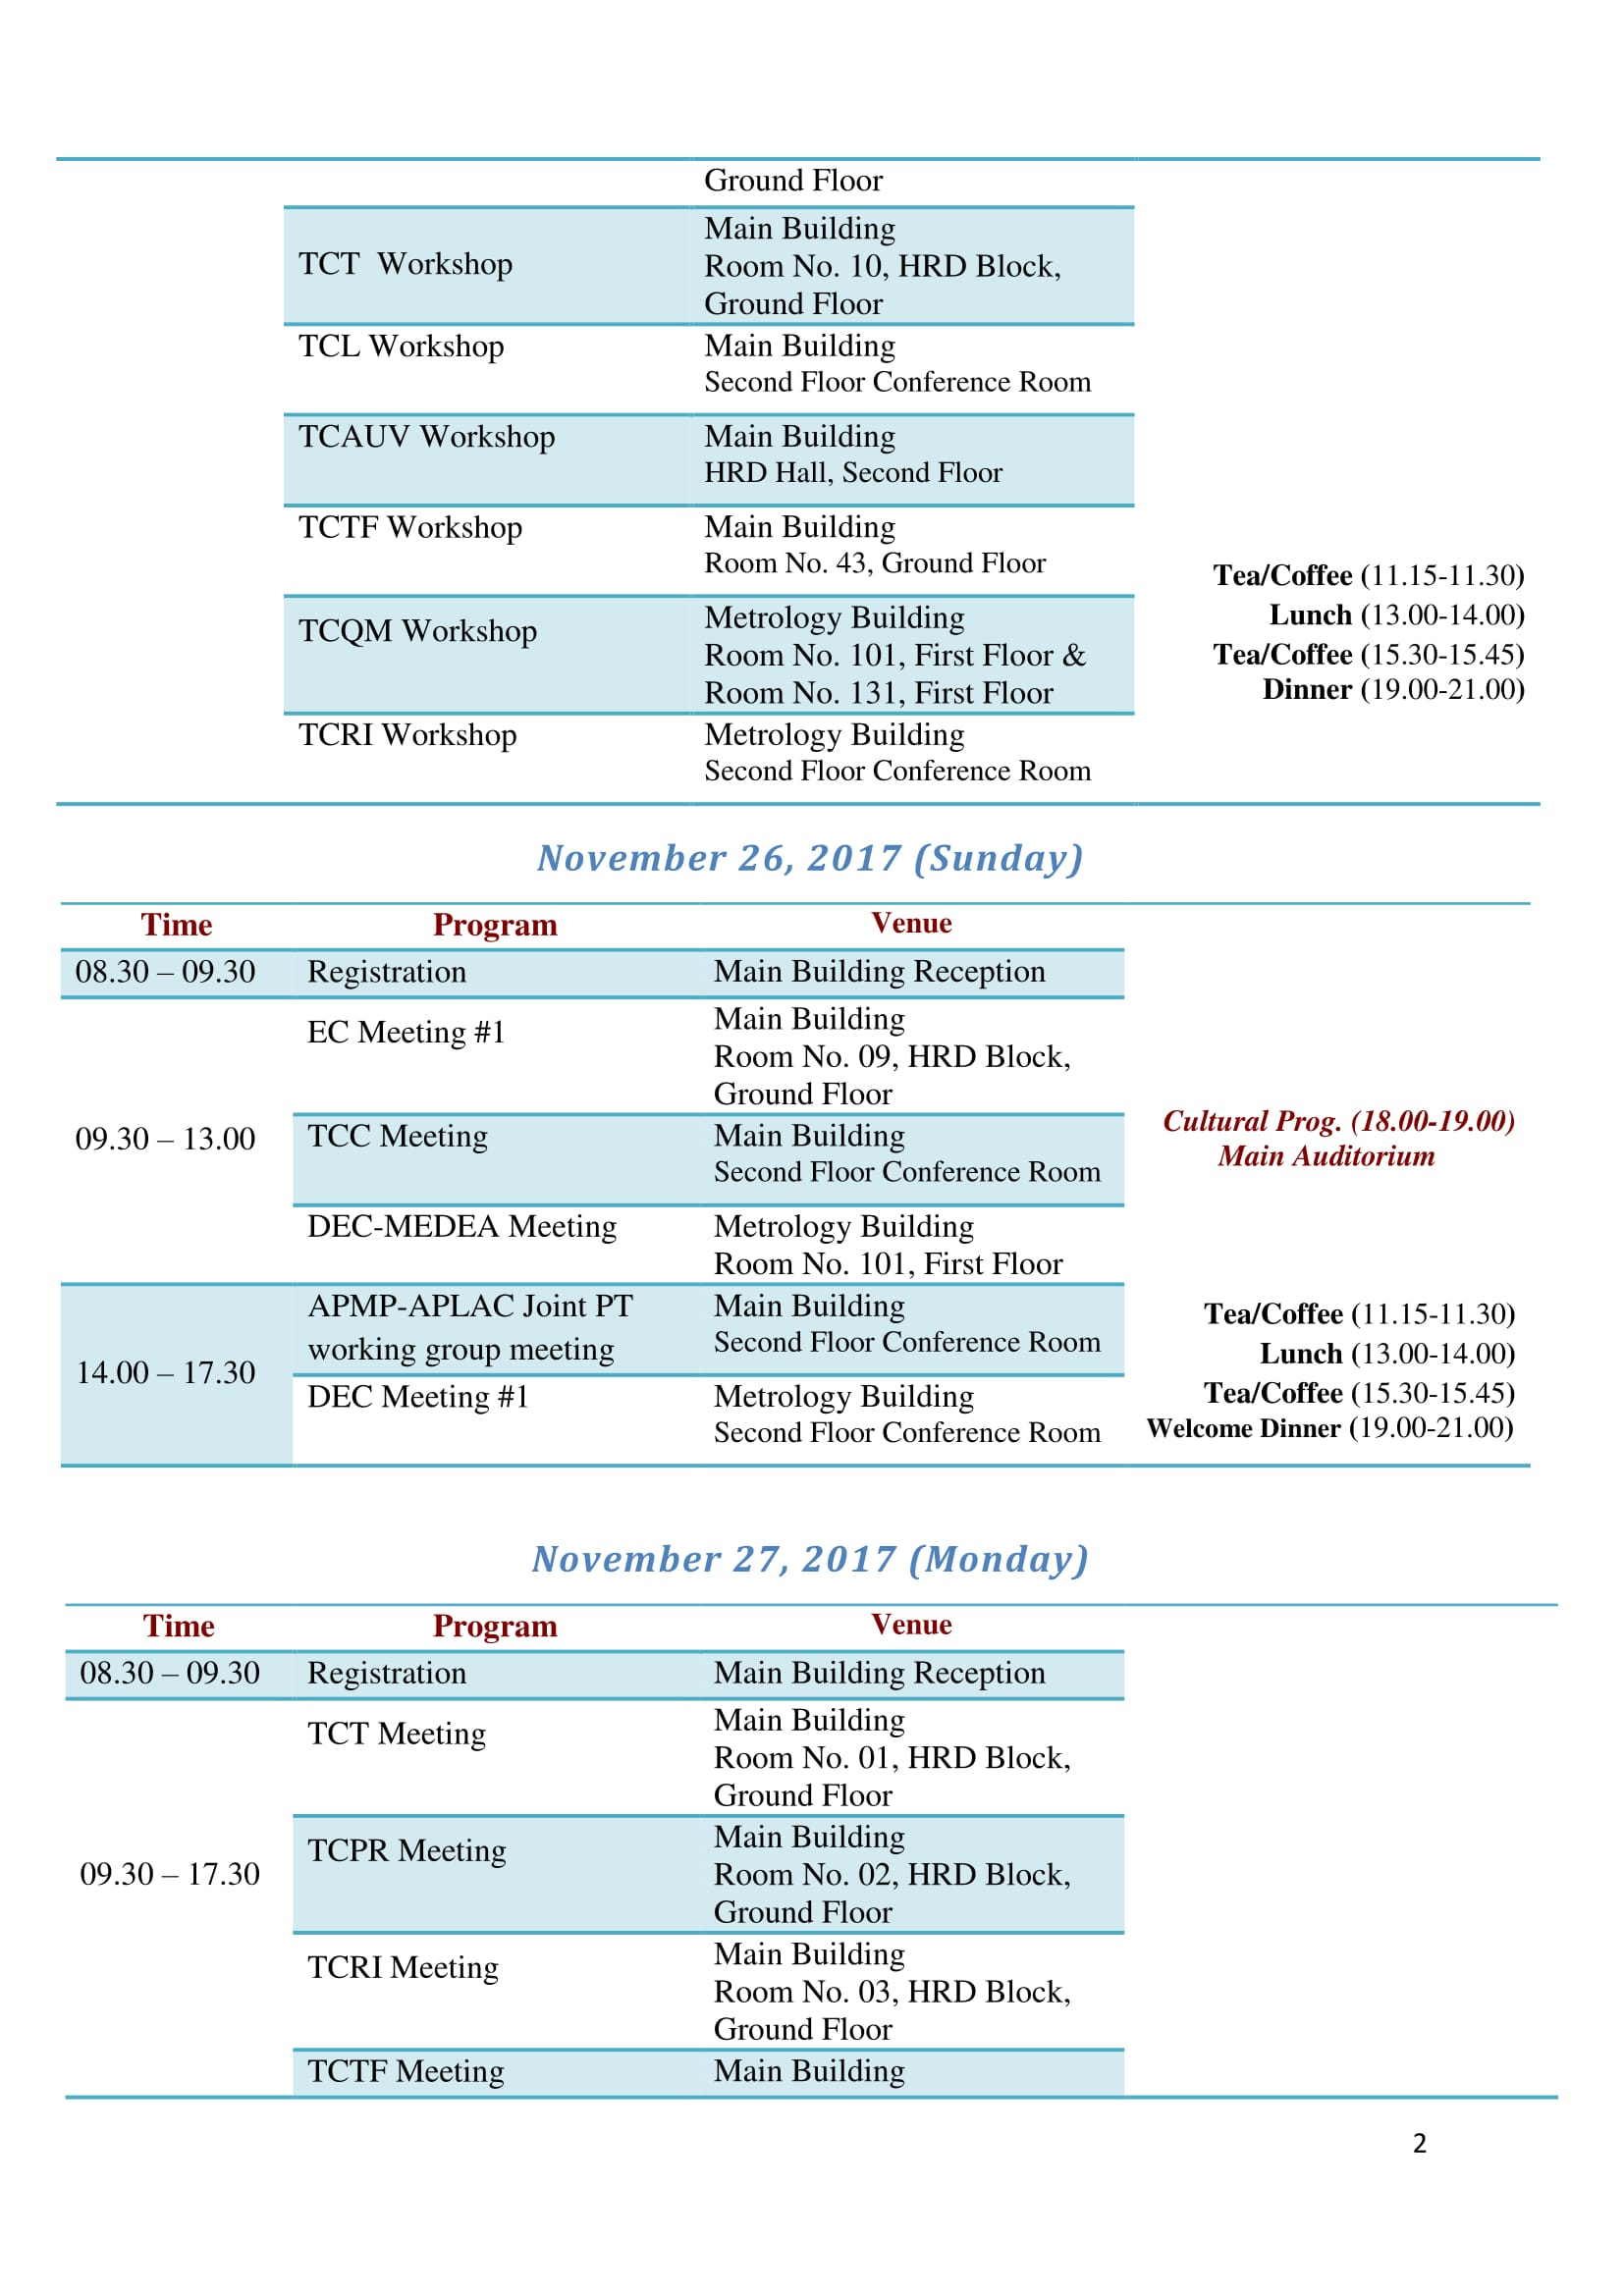 final Program Schedule(modified)-2